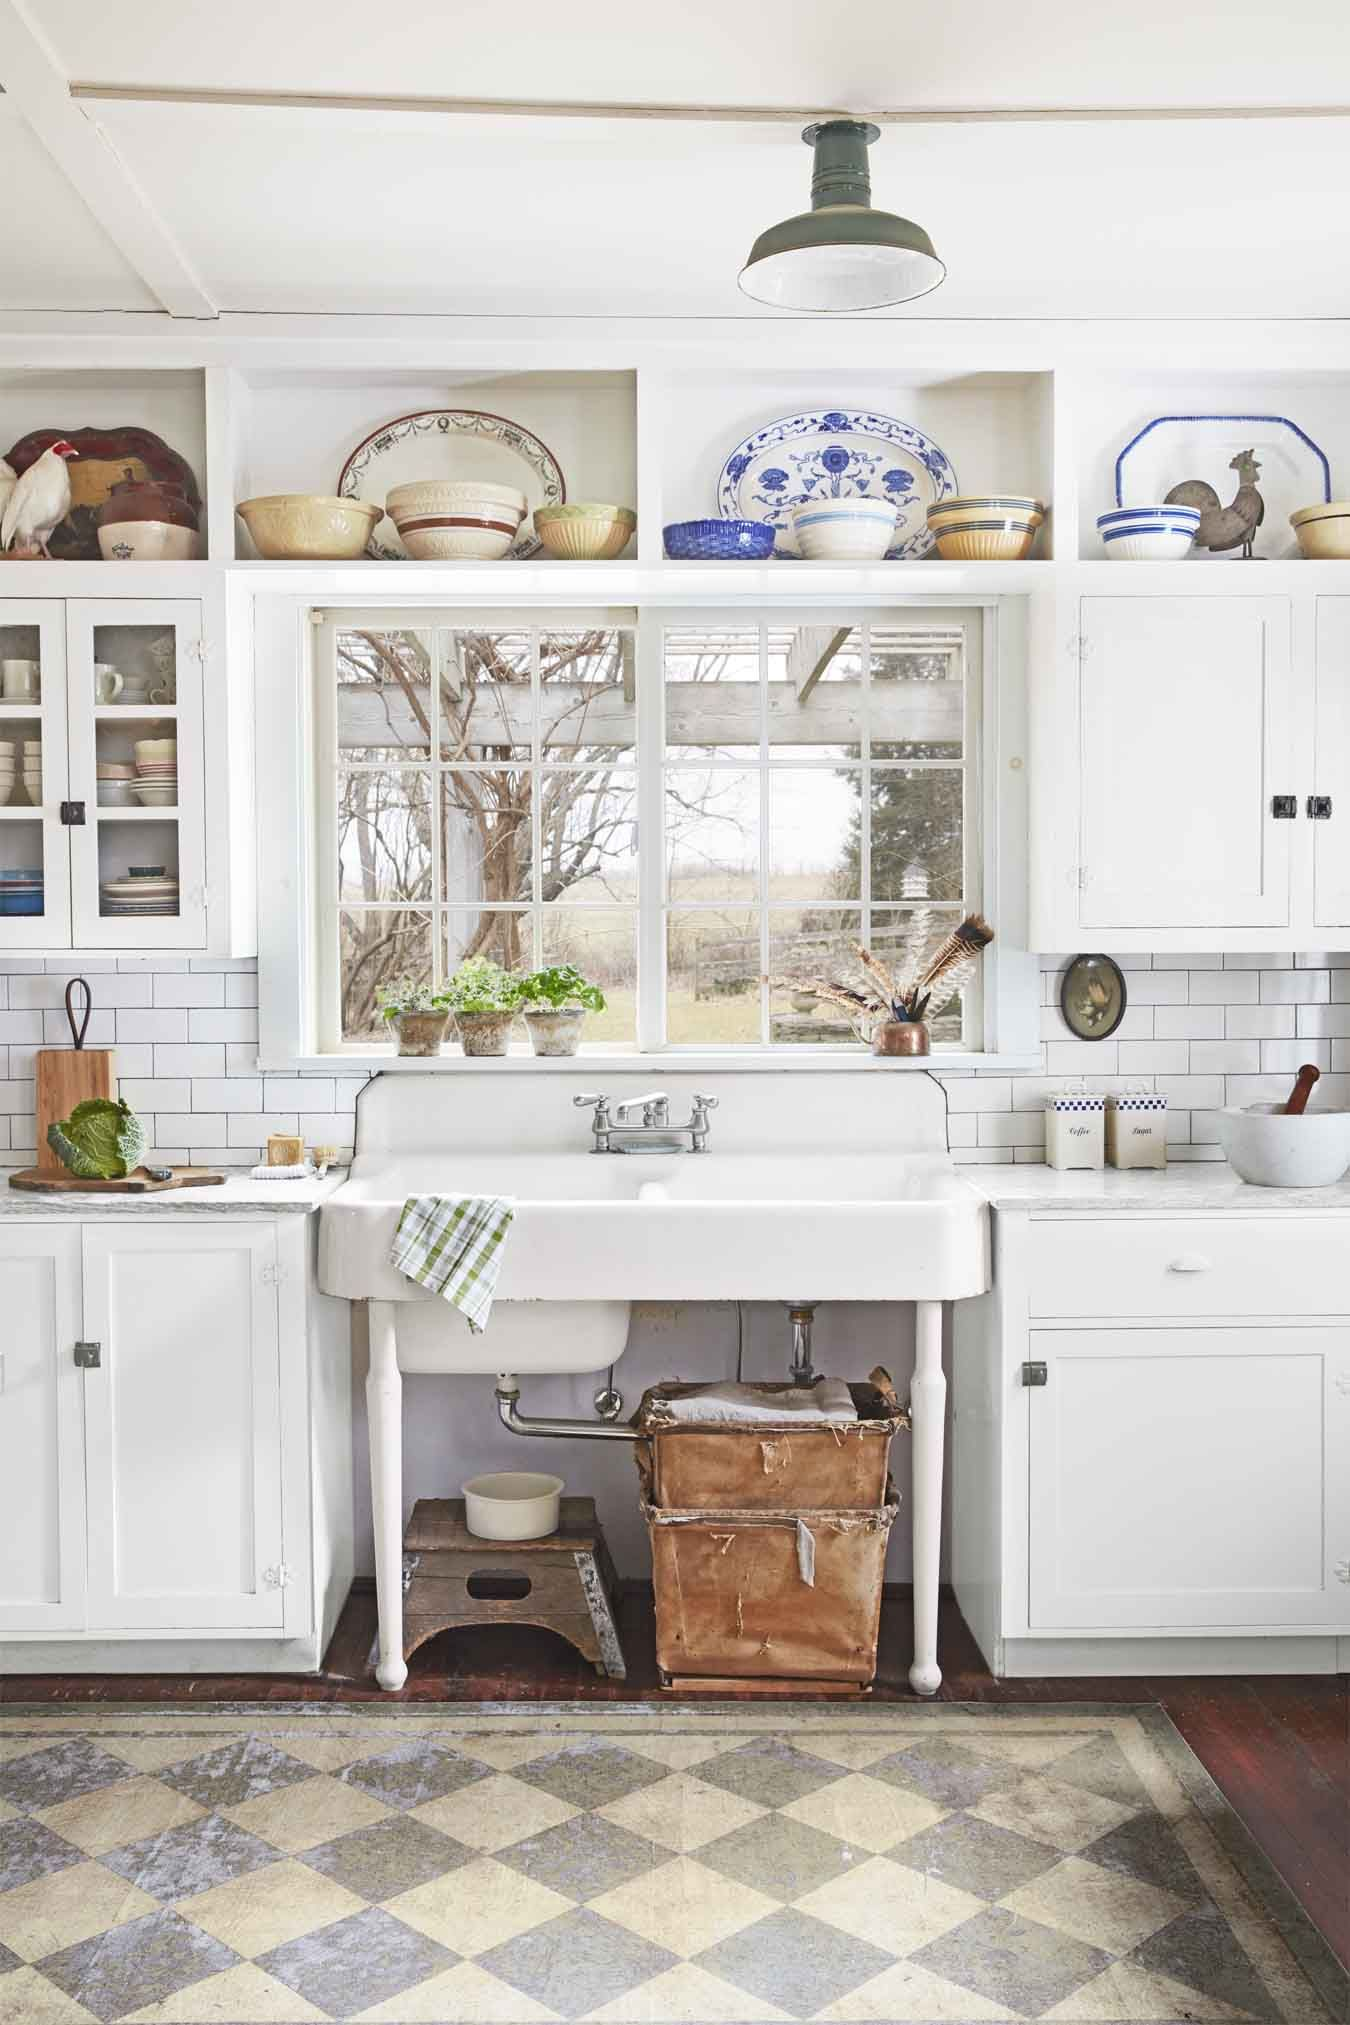 These Amazing Kitchen Decor Ideas Are Just What Your Favorite Room Needs Rustic Kitchen Cabinets Kitchen Inspirations Farmhouse Style Kitchen